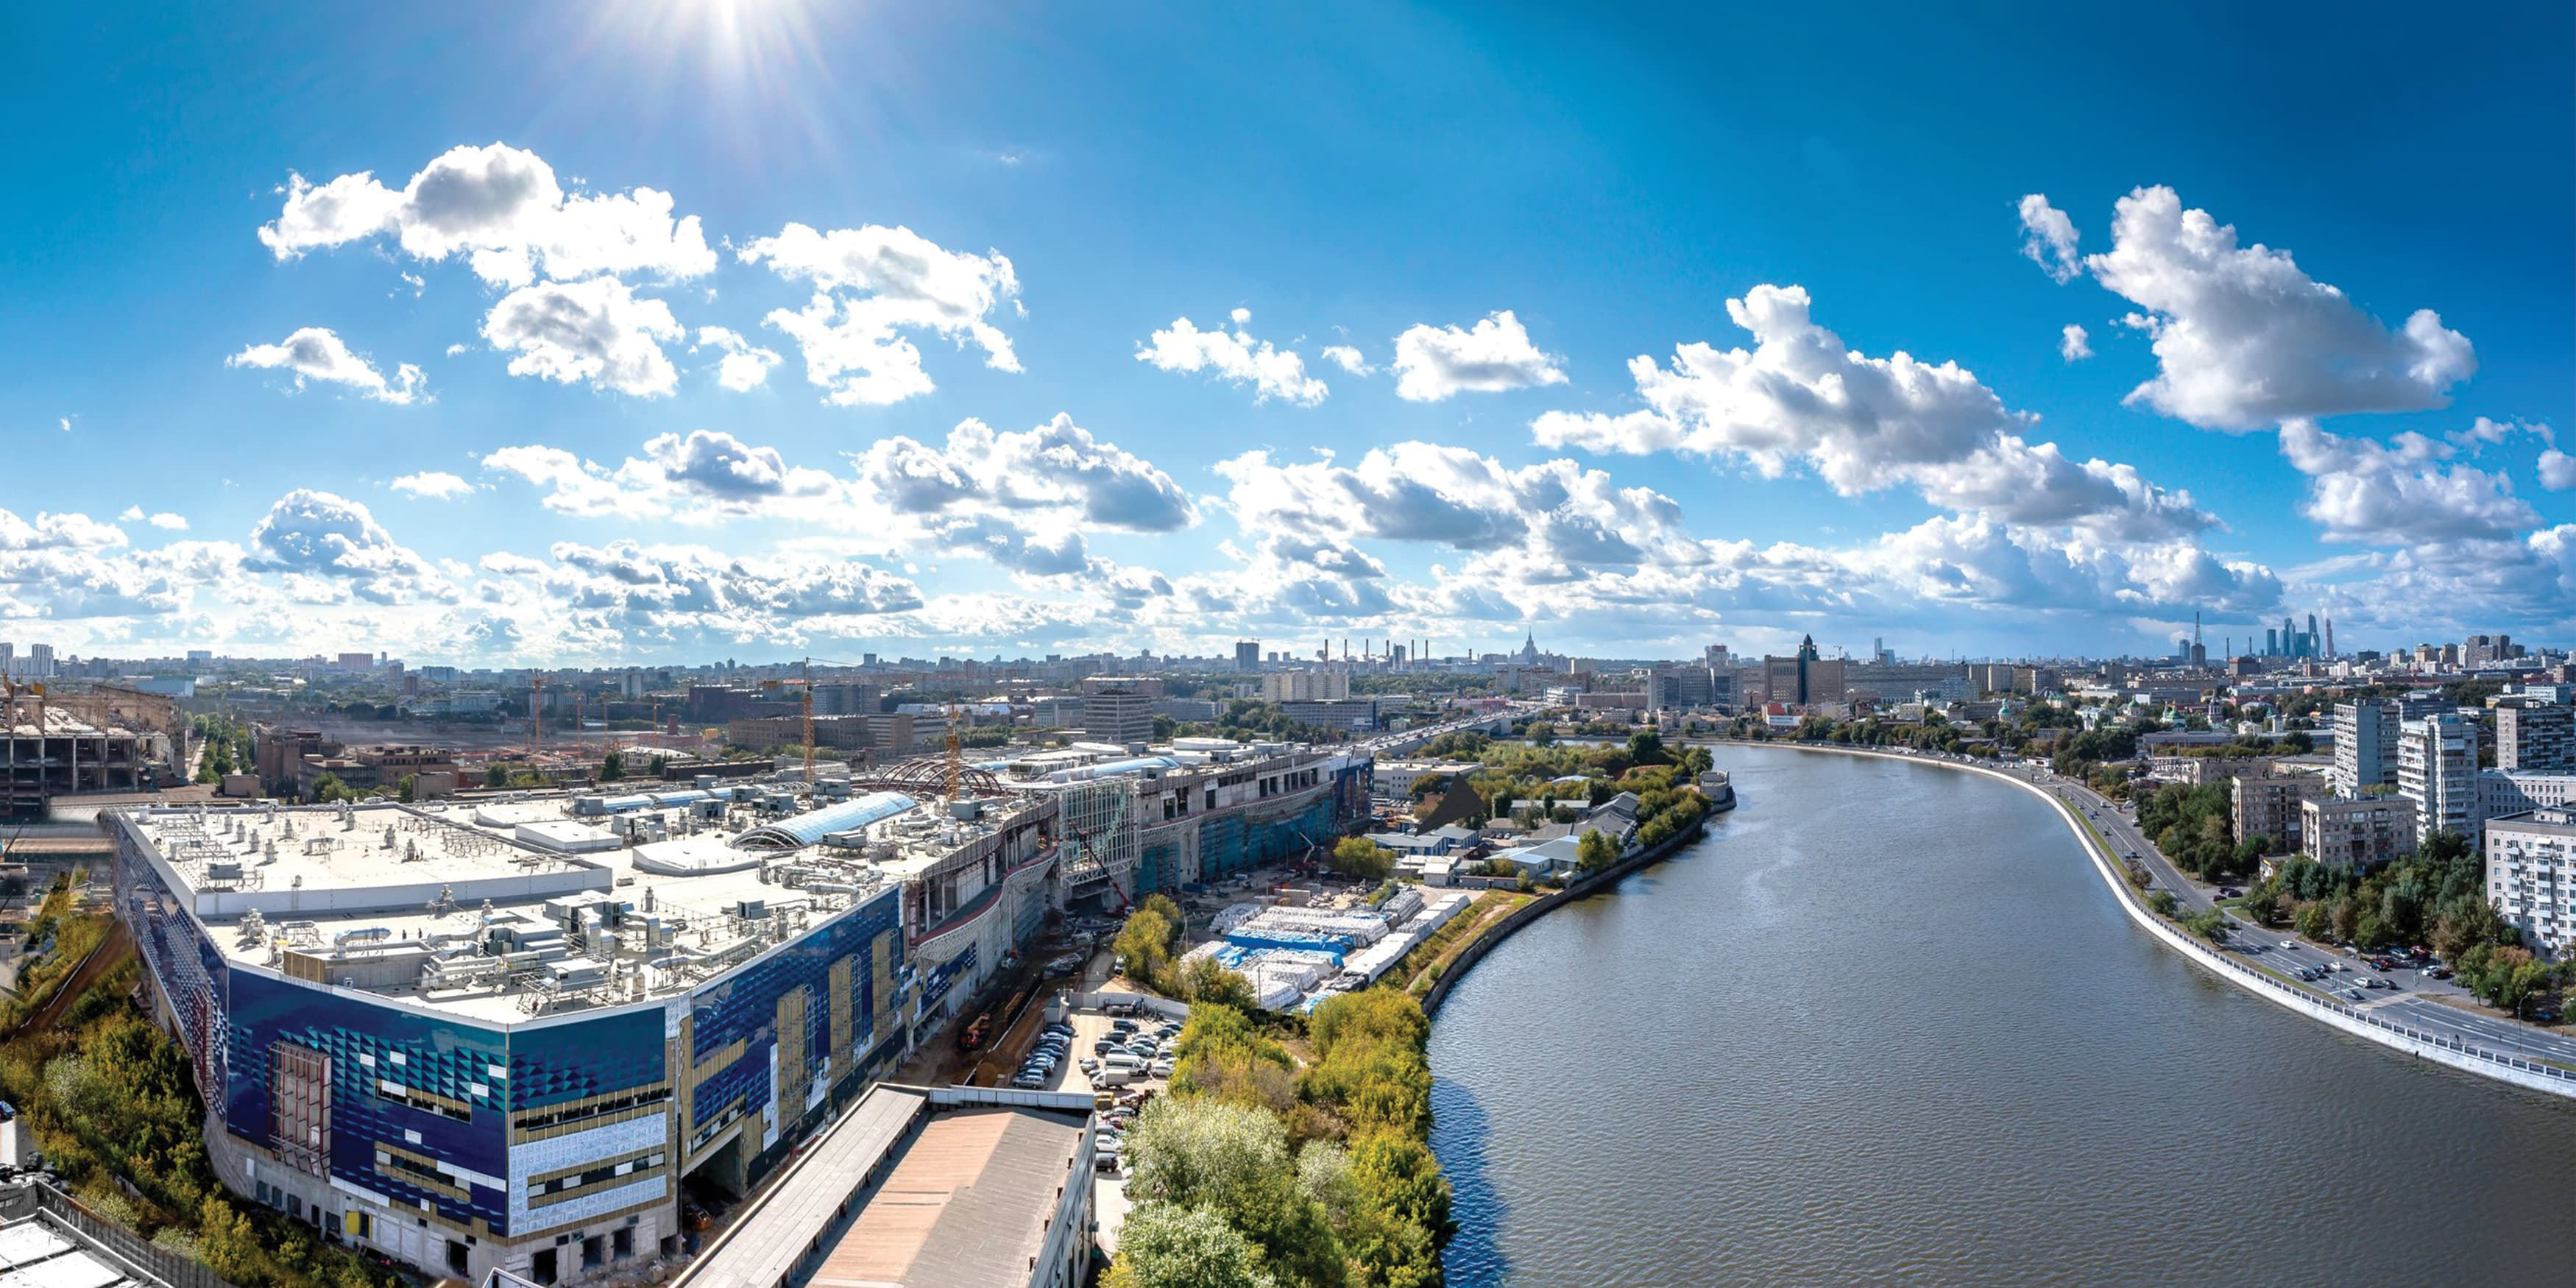 Aerial View of Moscow Riviera retail destination